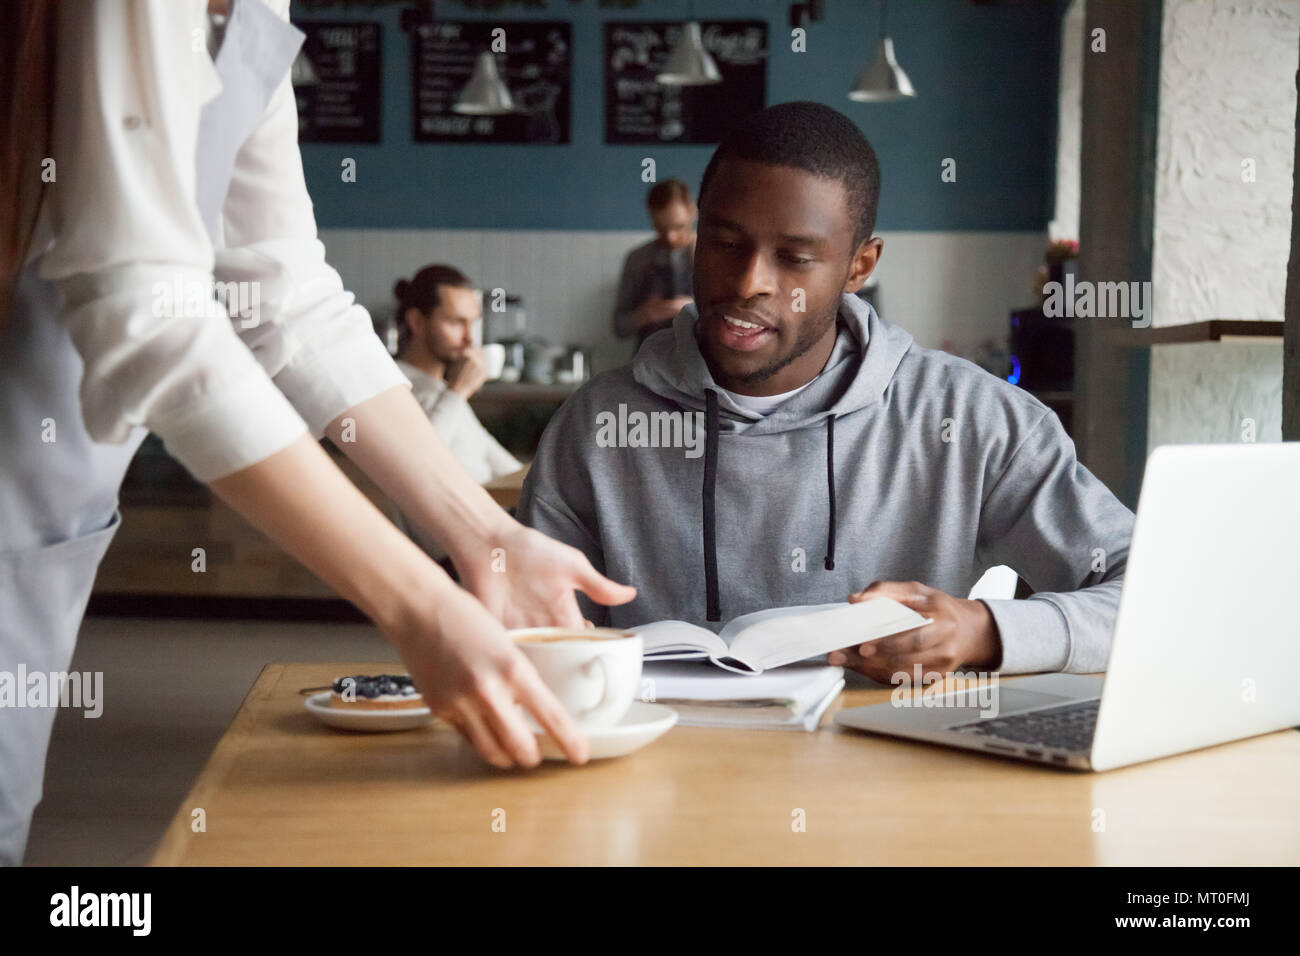 Waitress serving coffee to smiling african-american man customer - Stock Image